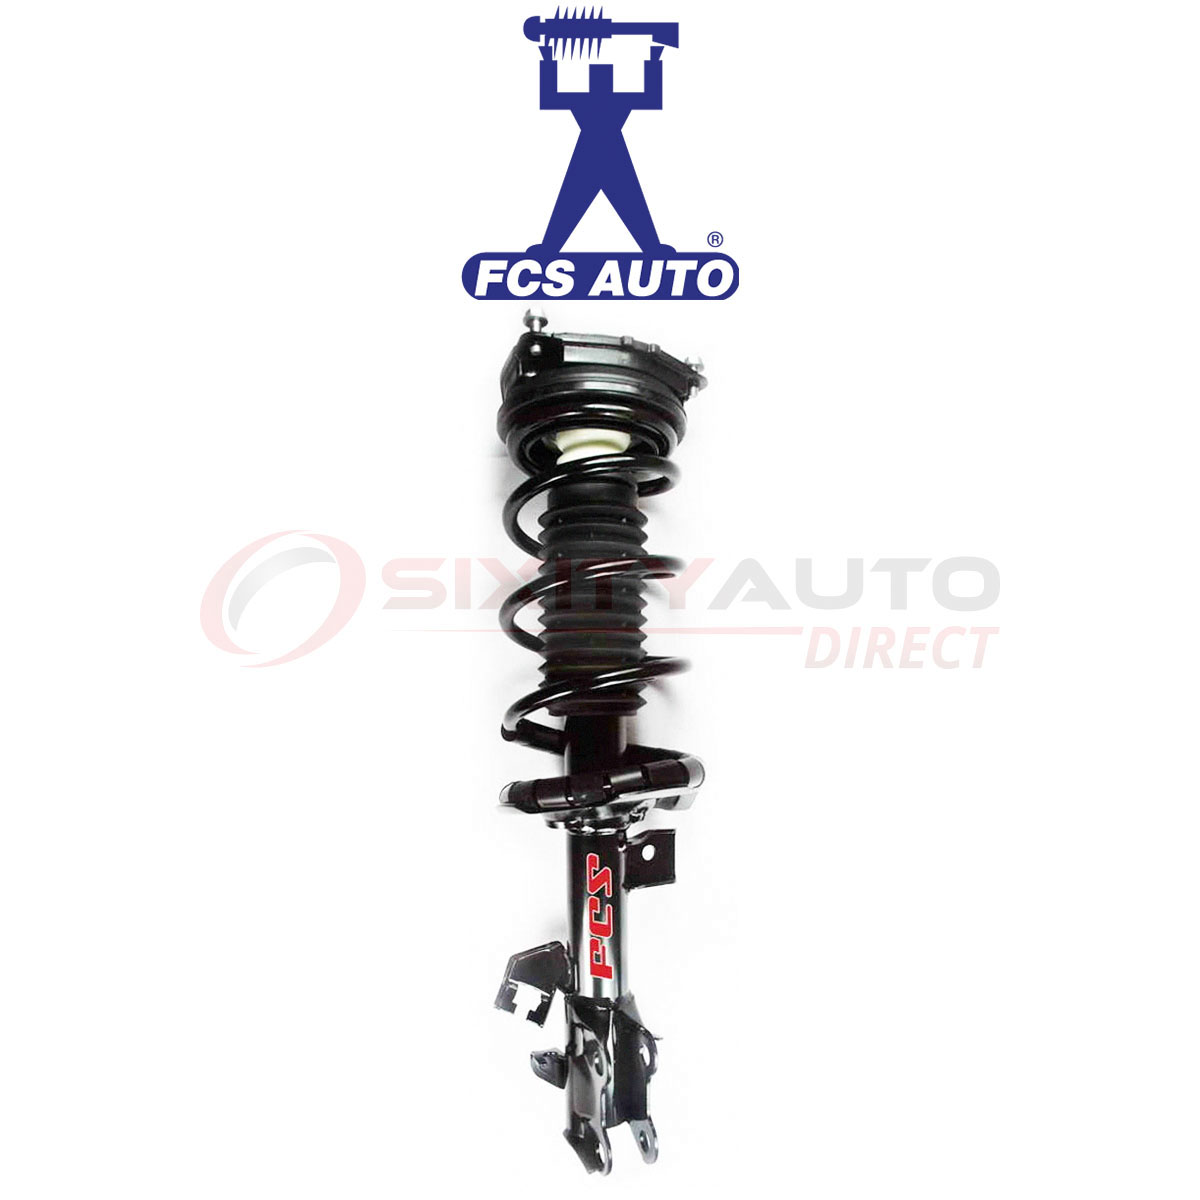 FCS Suspension Strut & Coil Spring Assembly for 2009-2014